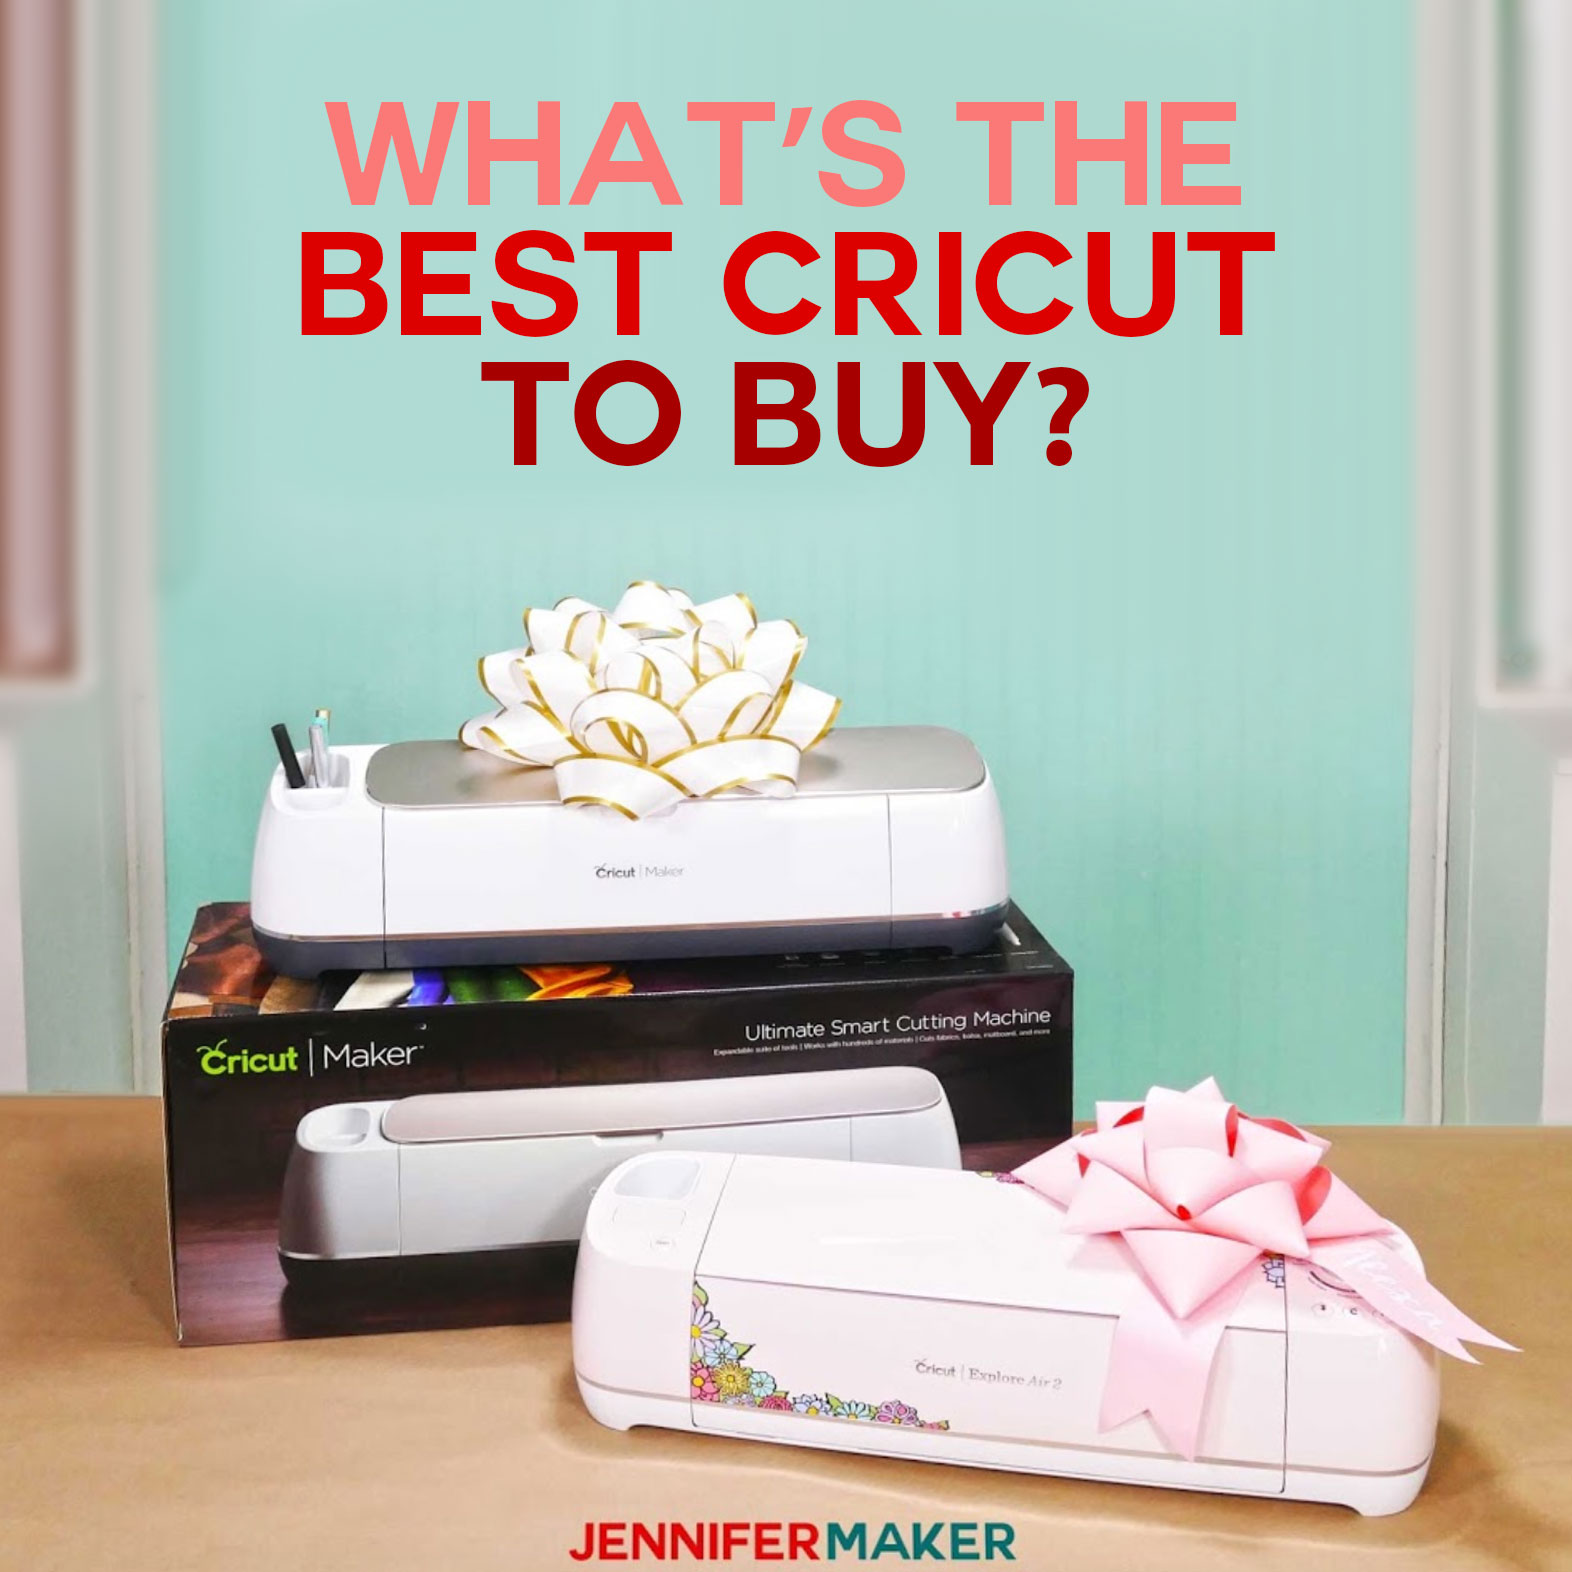 Best Cricut Machine To Buy For Beginners